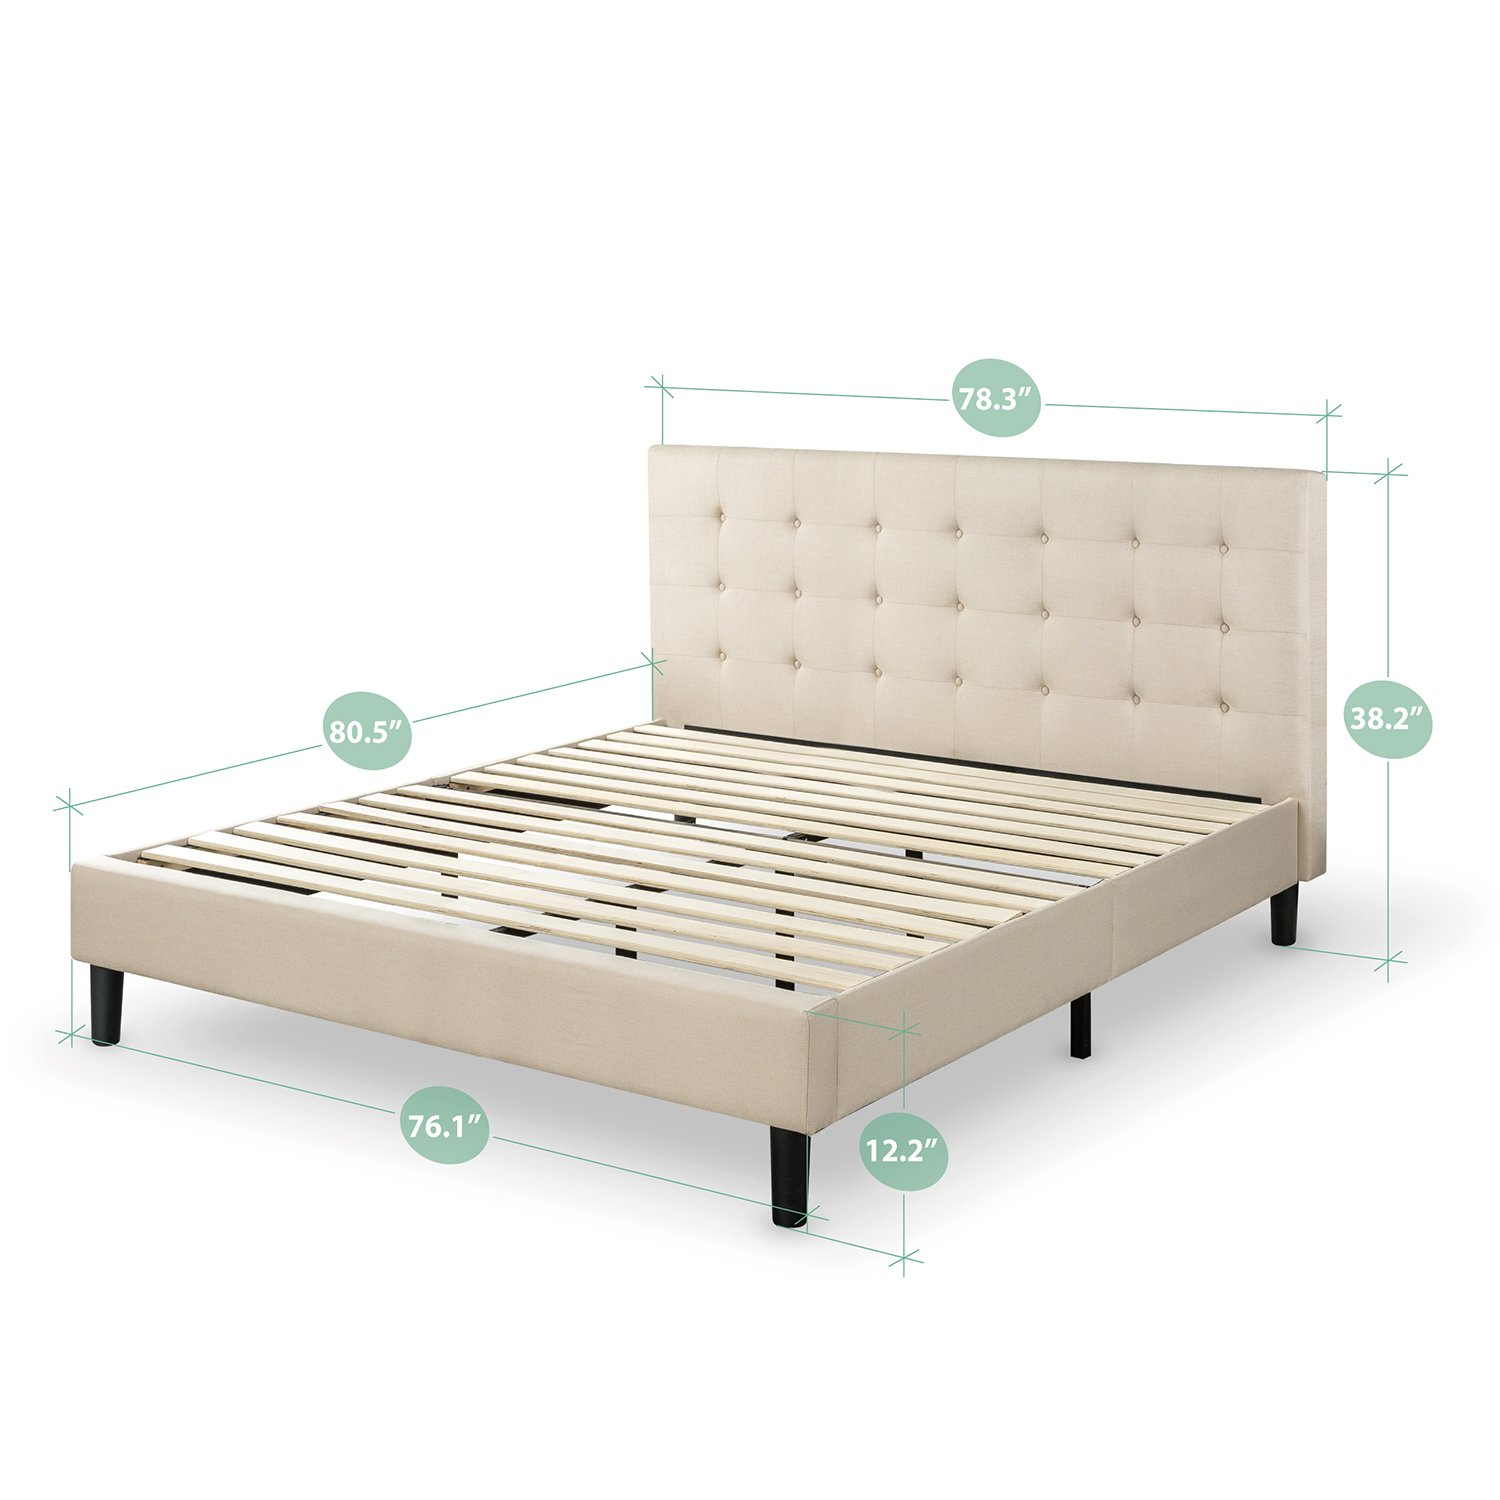 Amazon Zinus Upholstered Button Tufted Platform Bed with Wooden